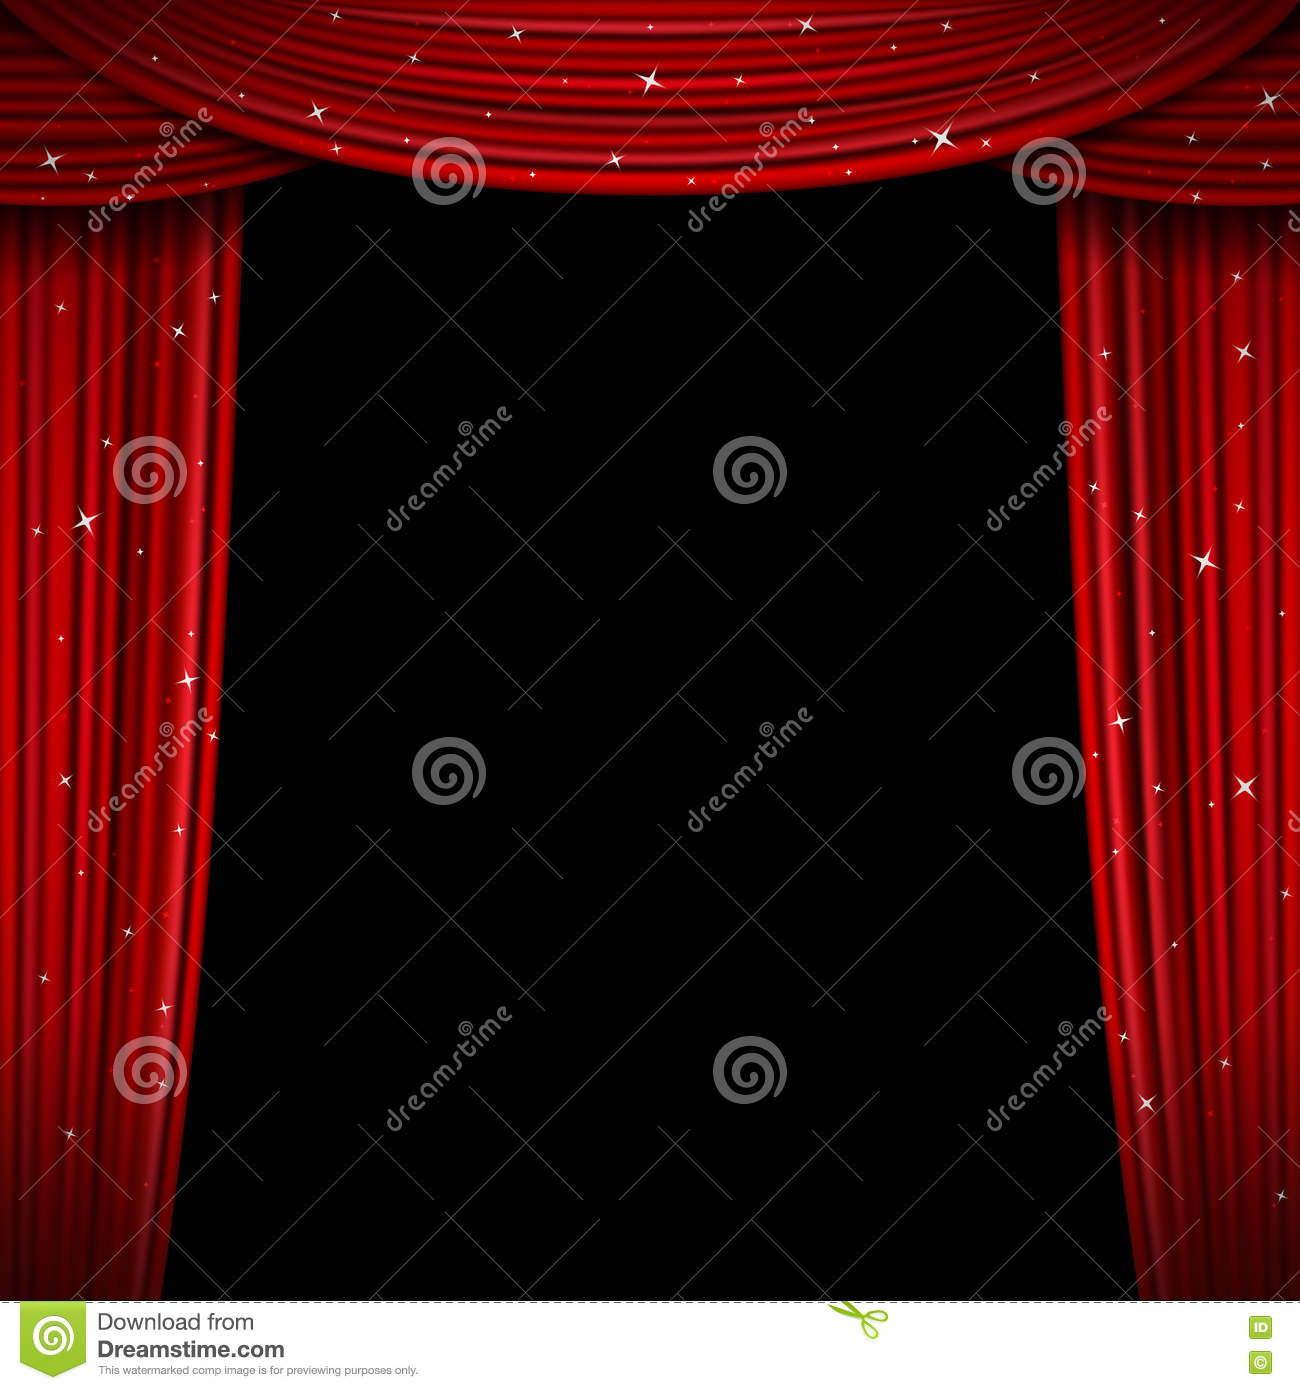 Blue stage curtains blue stage curtain vector free vector in - Glittering Red Curtain Vector Illustration Open Glitter Curtains Background Stock Vector